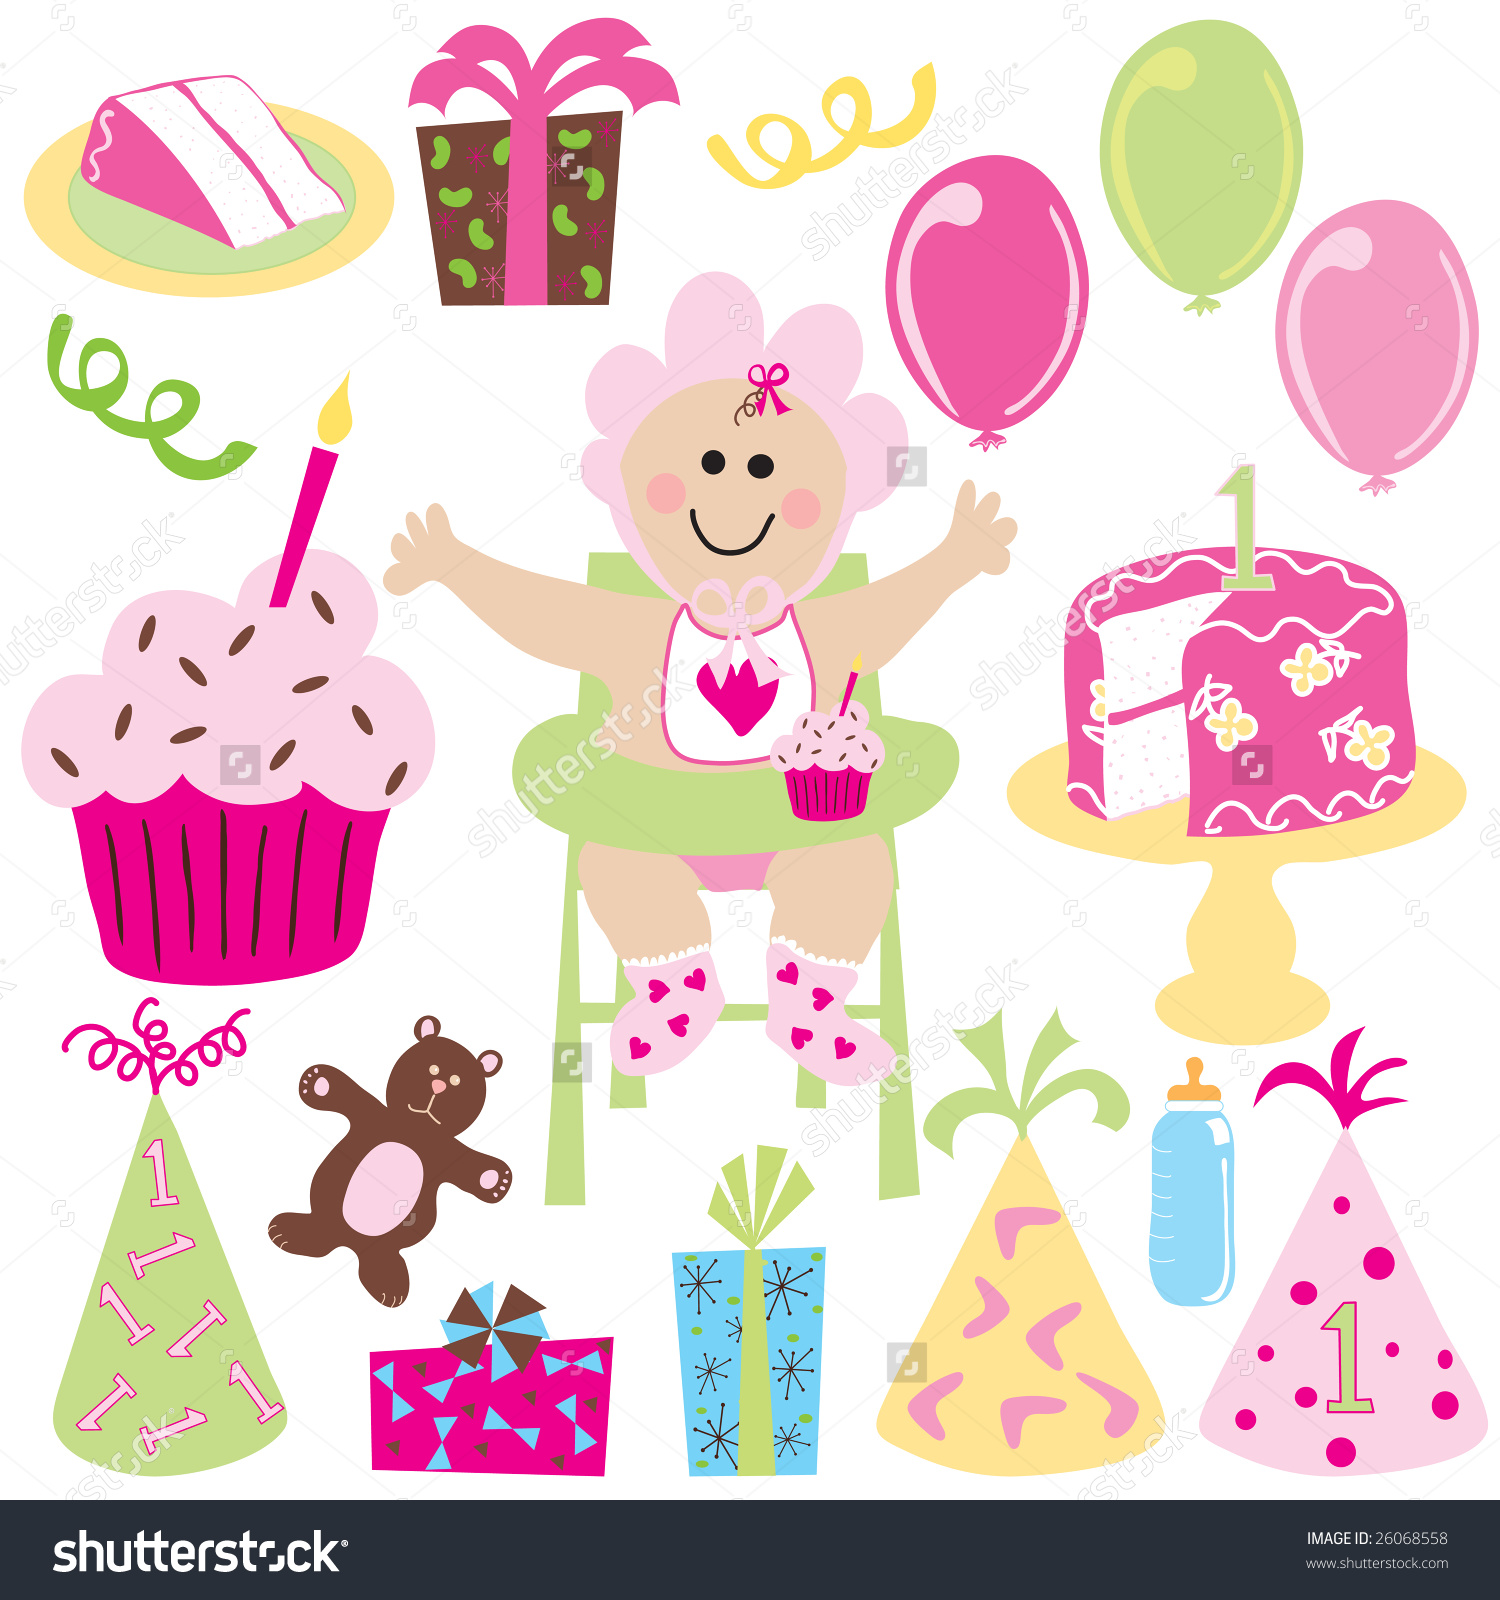 Baby girl cake clipart picture library download Baby Girls First Birthday Balloons Birthday Stock Vector 26068558 ... picture library download